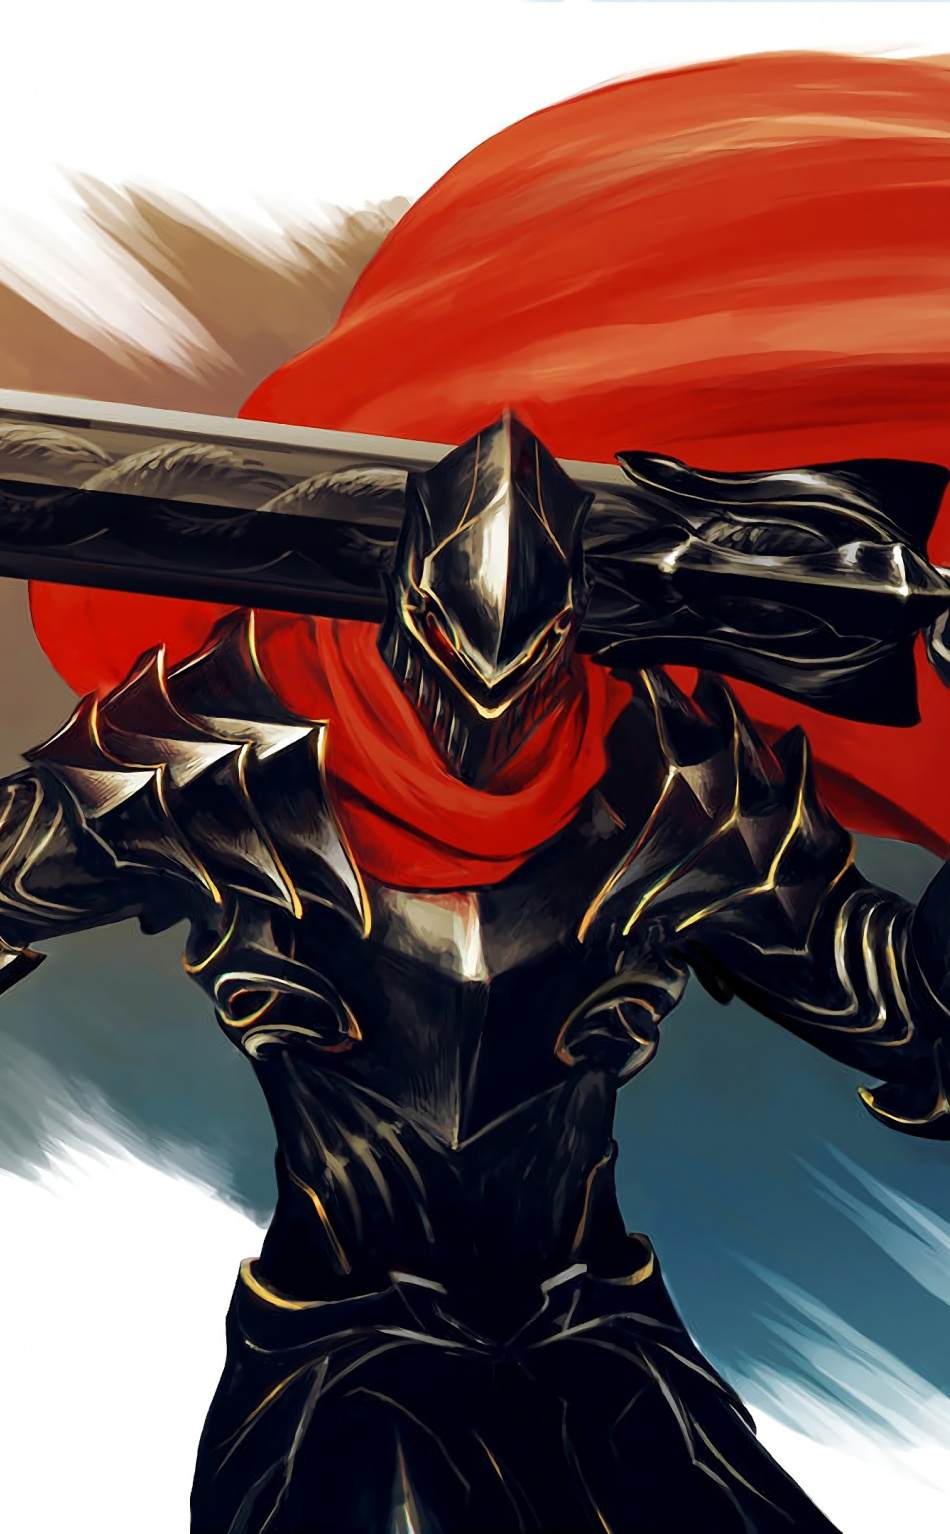 Armour Big Sword Warrior Overlord Anime Art Wallpaper Overlord Anime Wallpaper Iphone 1742166 Hd Wallpaper Backgrounds Download